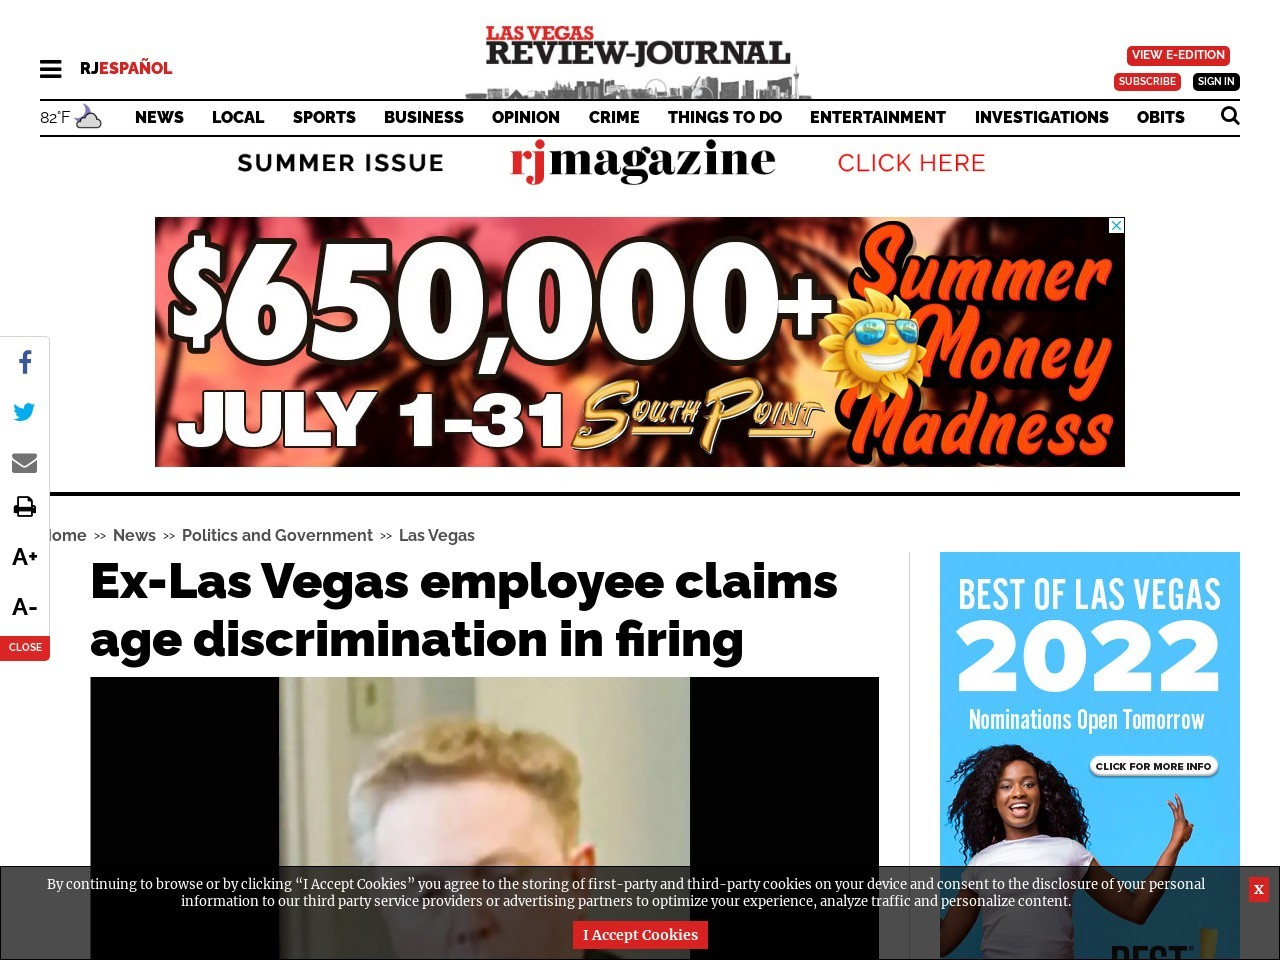 Ex-Las Vegas employee claims age discrimination in firing